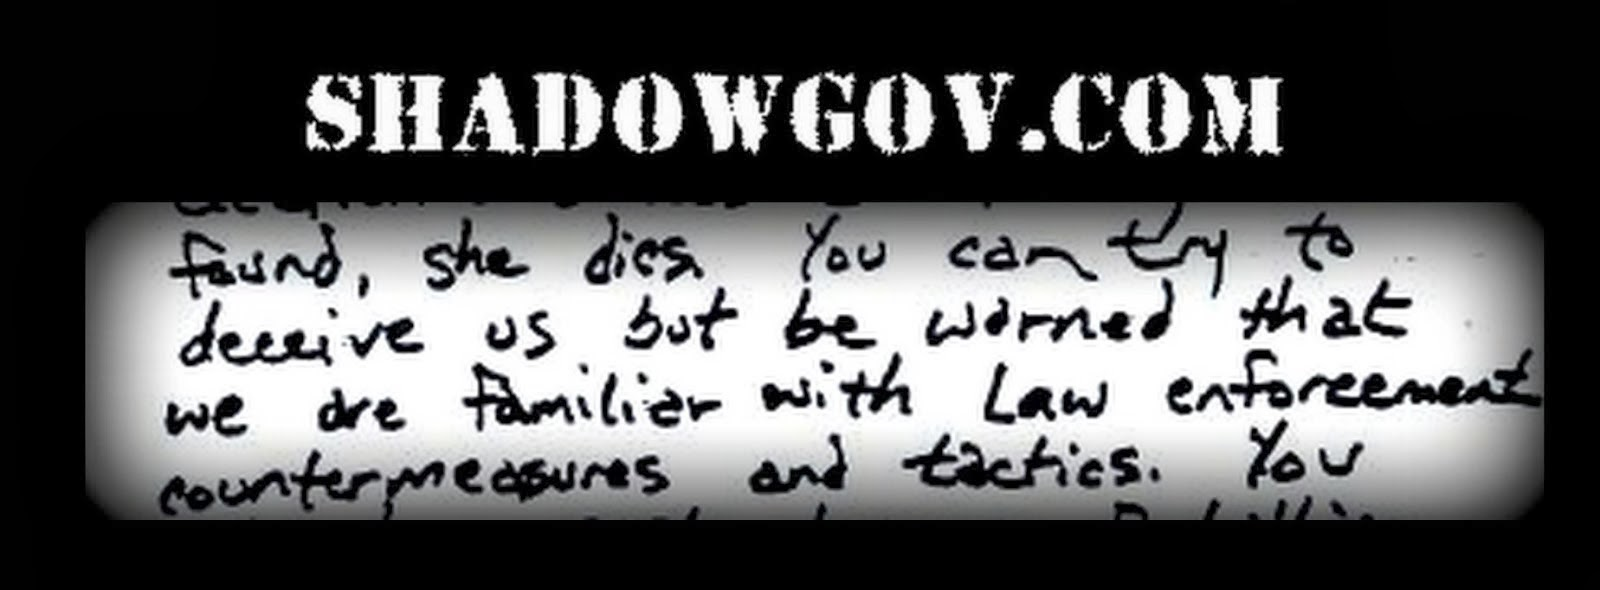 "ShadowGov ""Small Foreign Faction"" DNA Secrets to be Revealed"